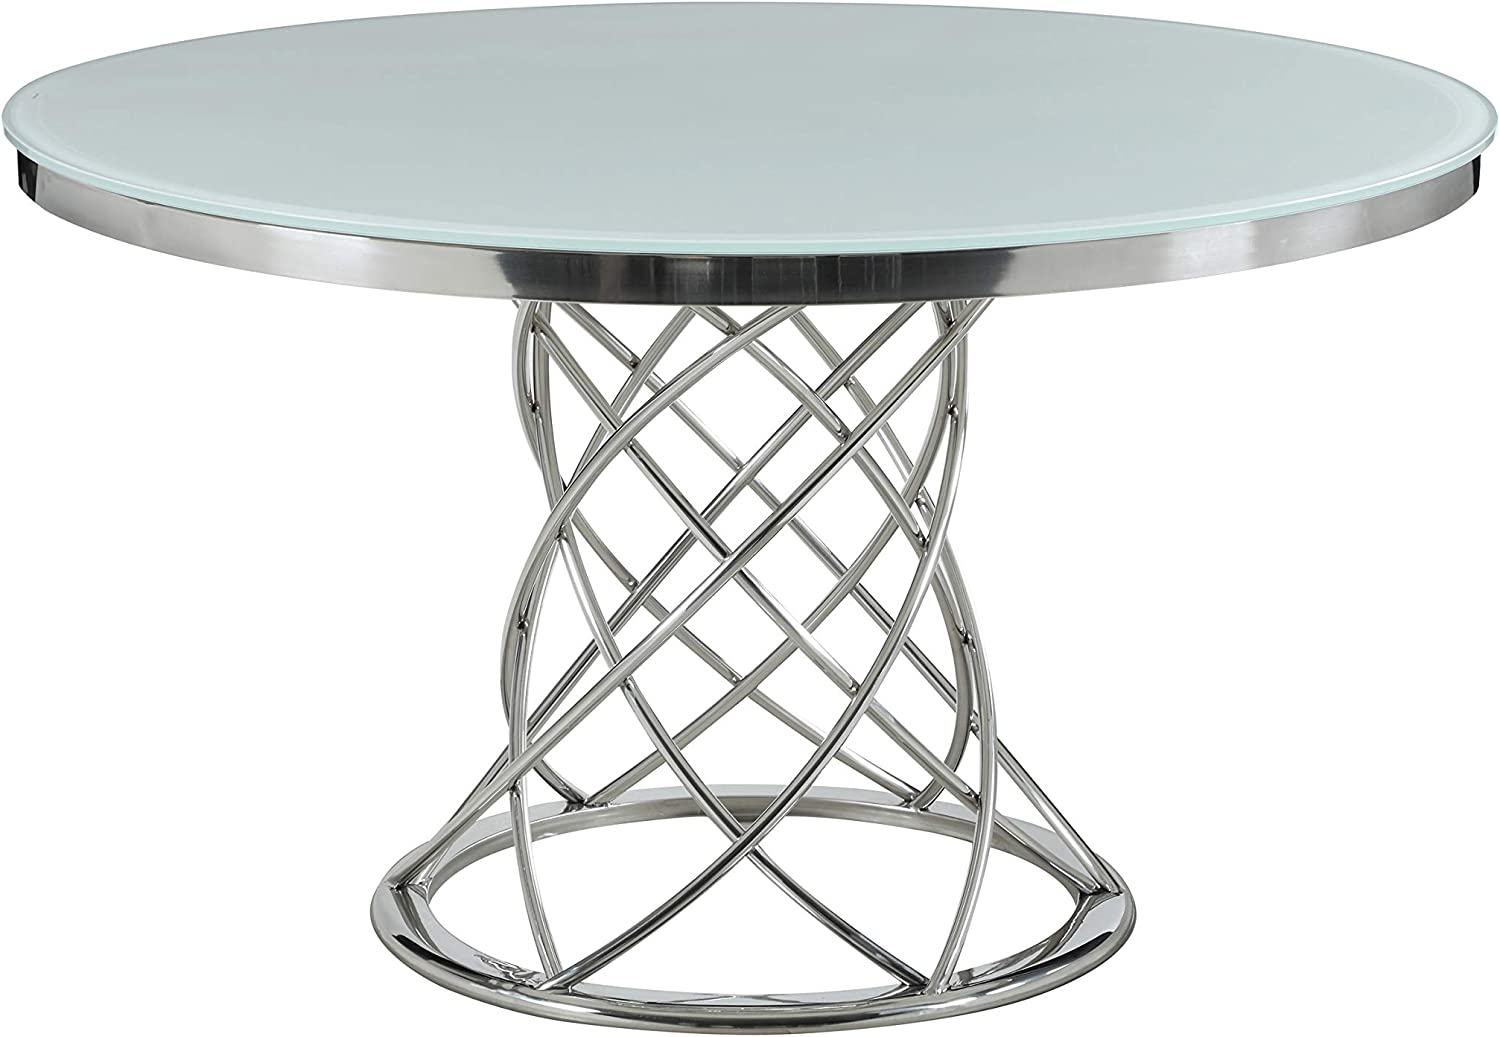 Coaster Home Furnishings Irene Round Glass Top White and Chrome Dining Table